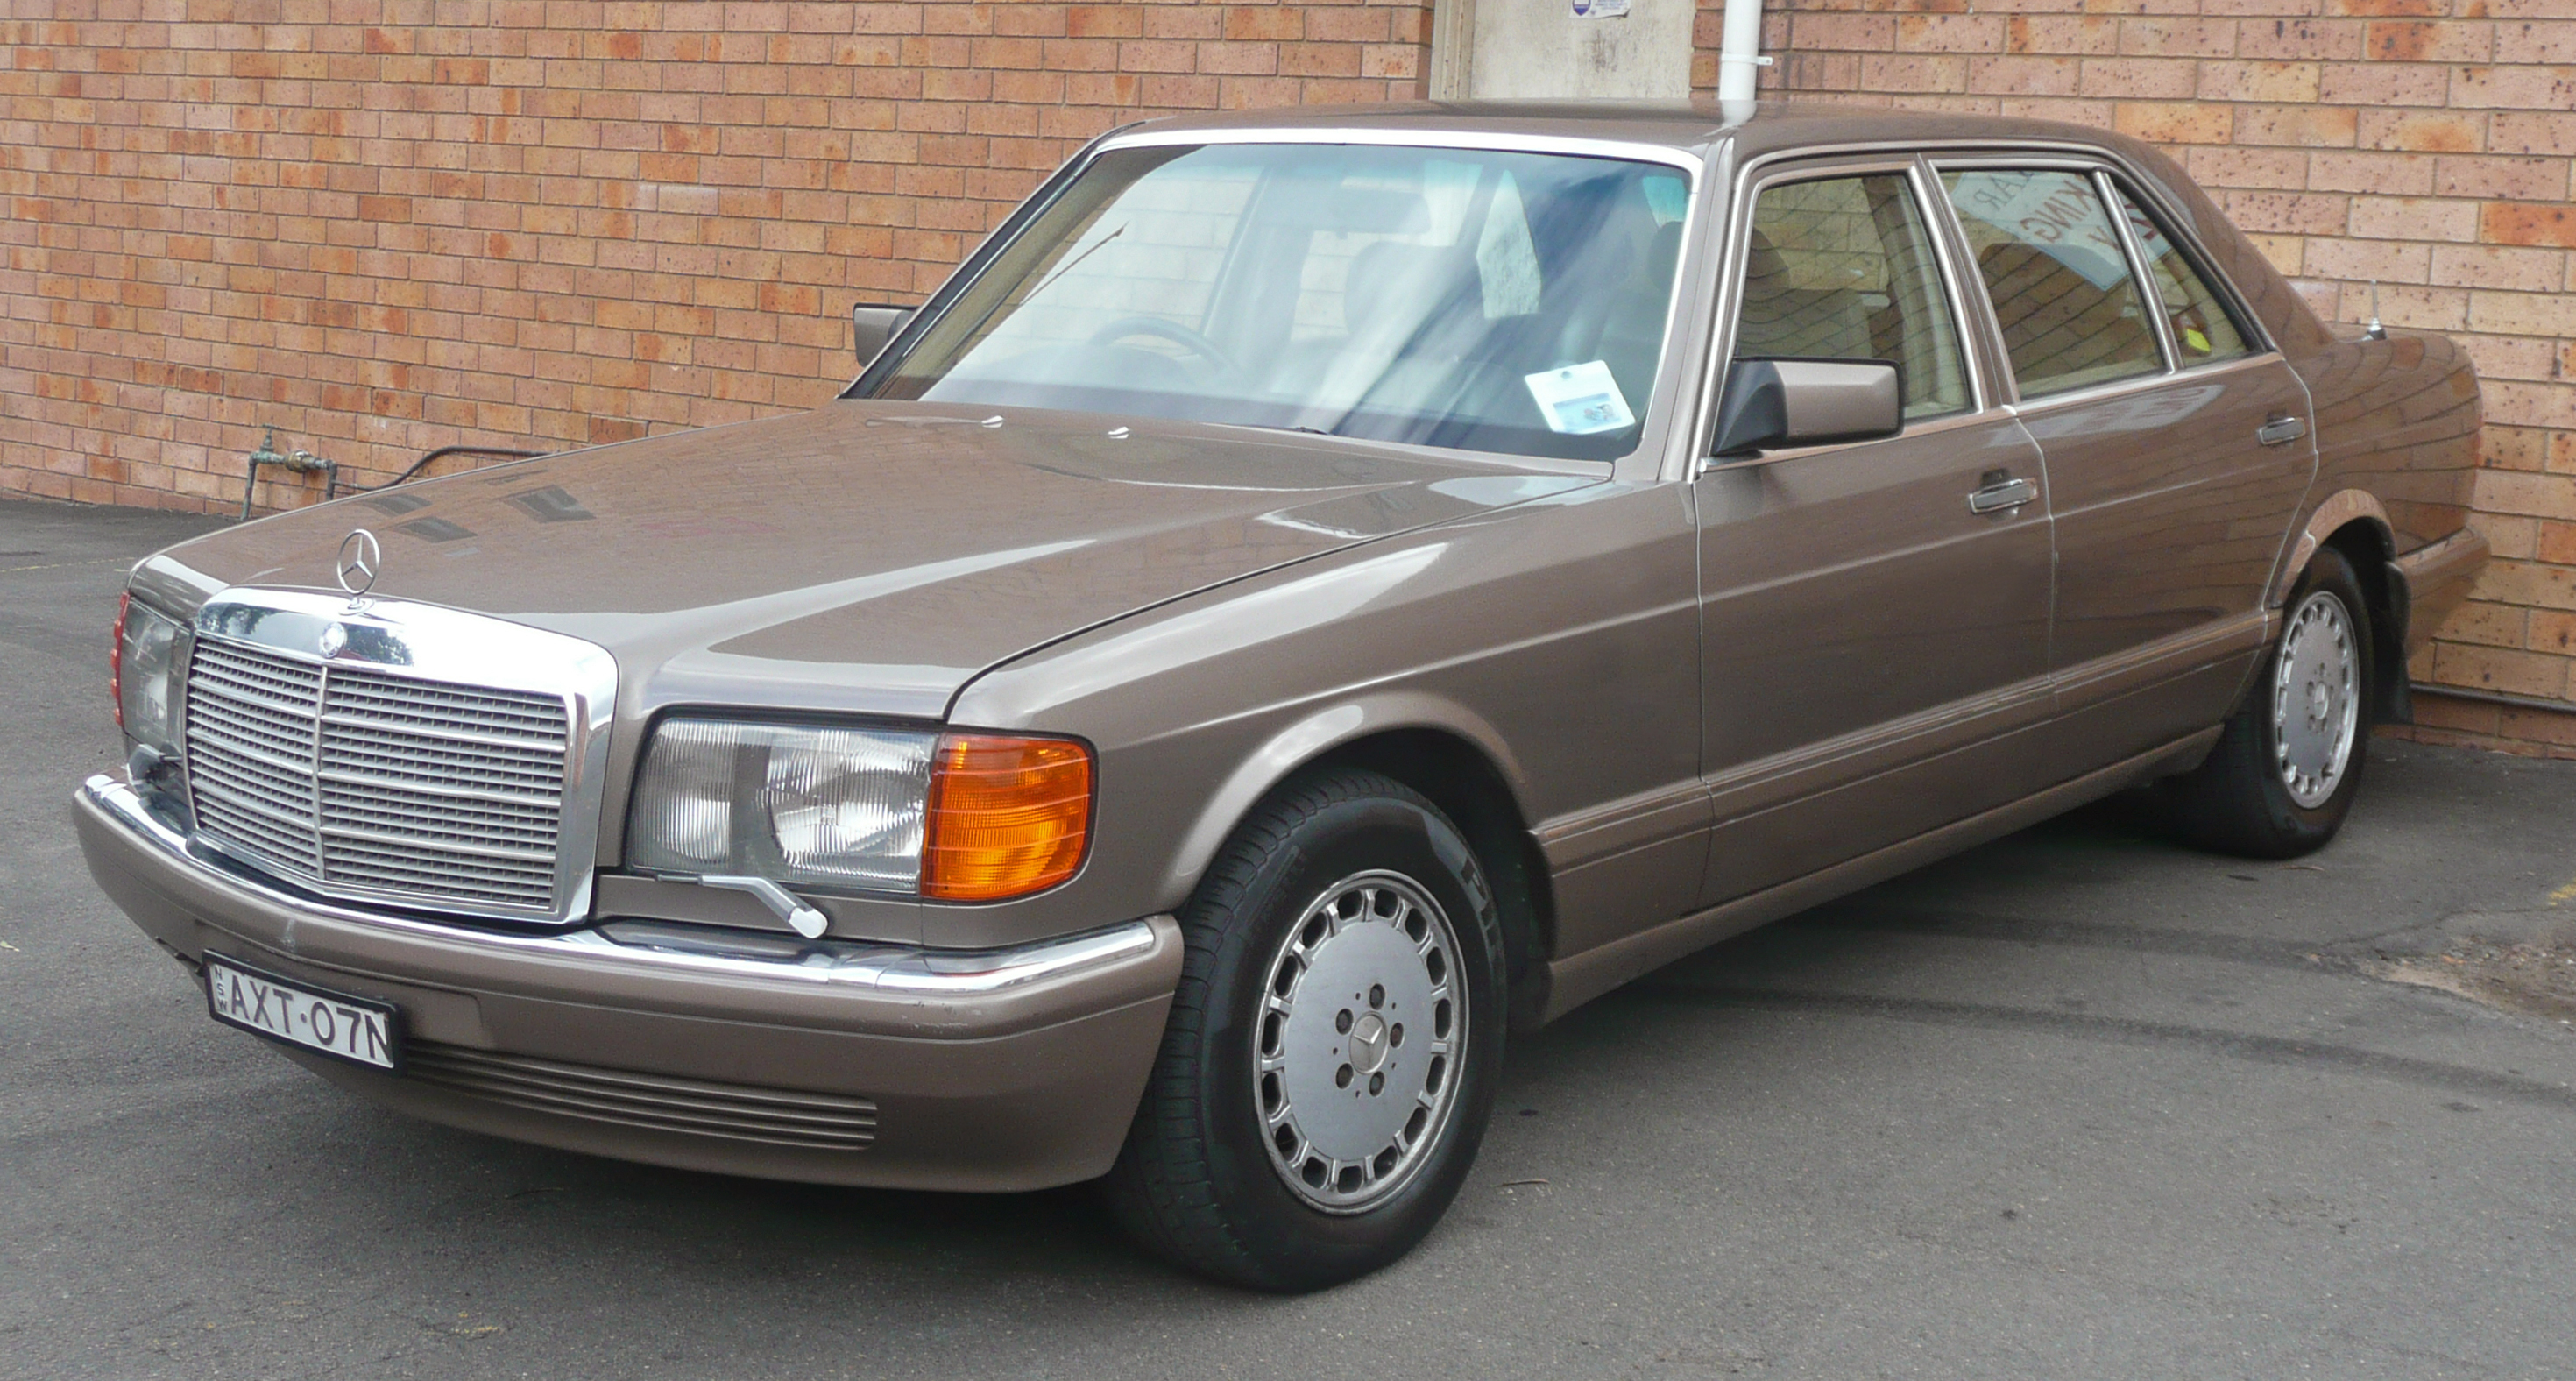 Benz s class w140 600sel or s600 m120 394 hp w140 information -  Mercedes Benz 600 Class 1992 1